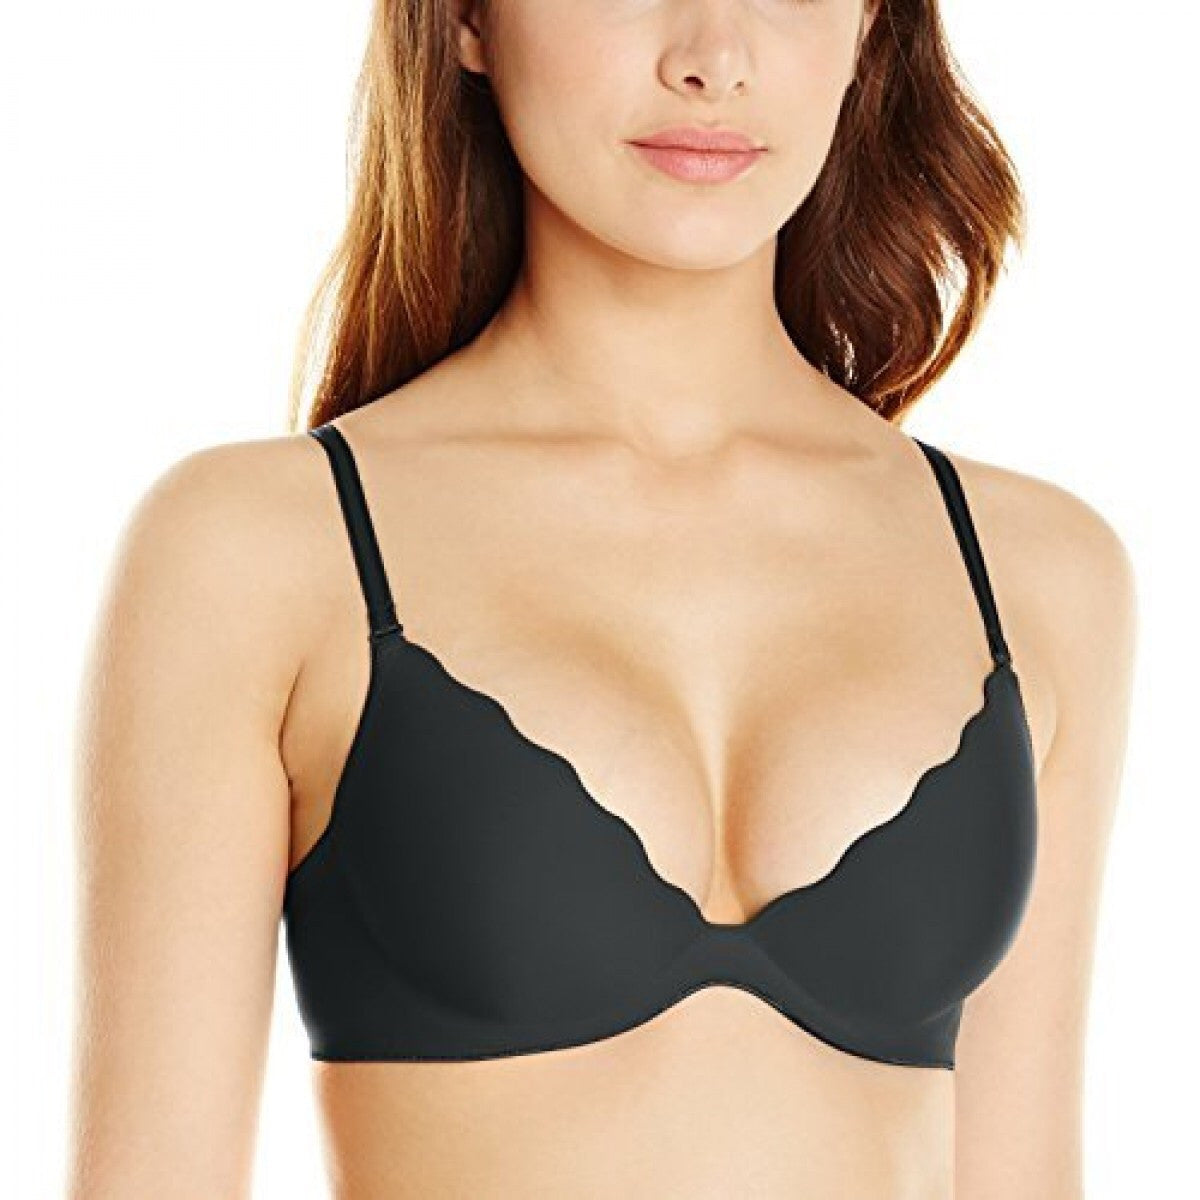 b.tempt'd Black Padded Push Up Bra